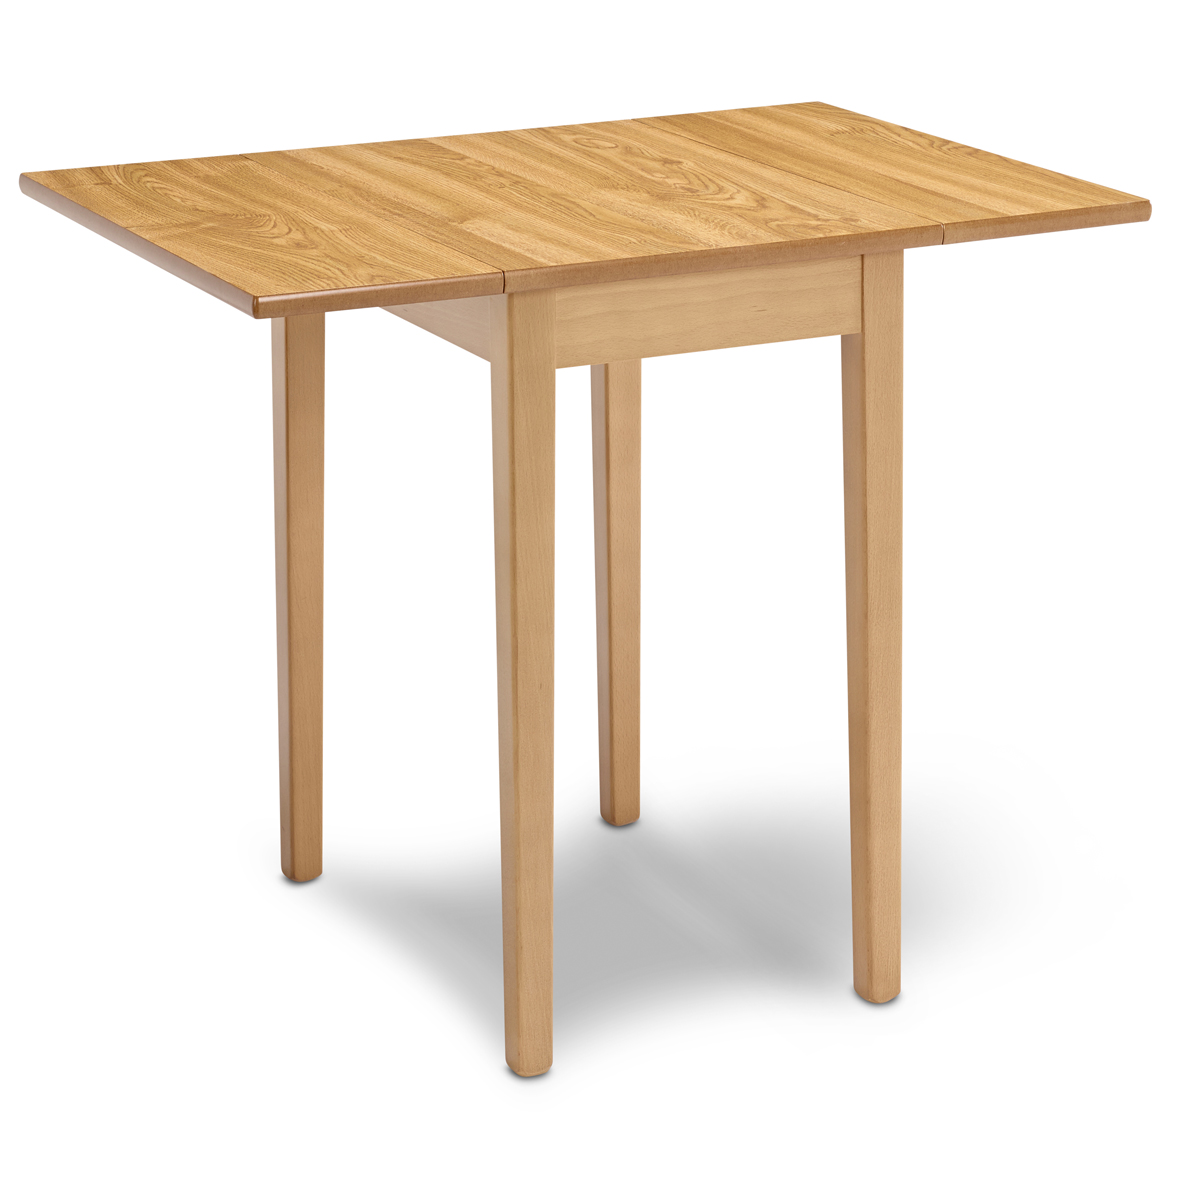 Tufftable Compact Drop Leaf Kitchen Table Scratches Stains